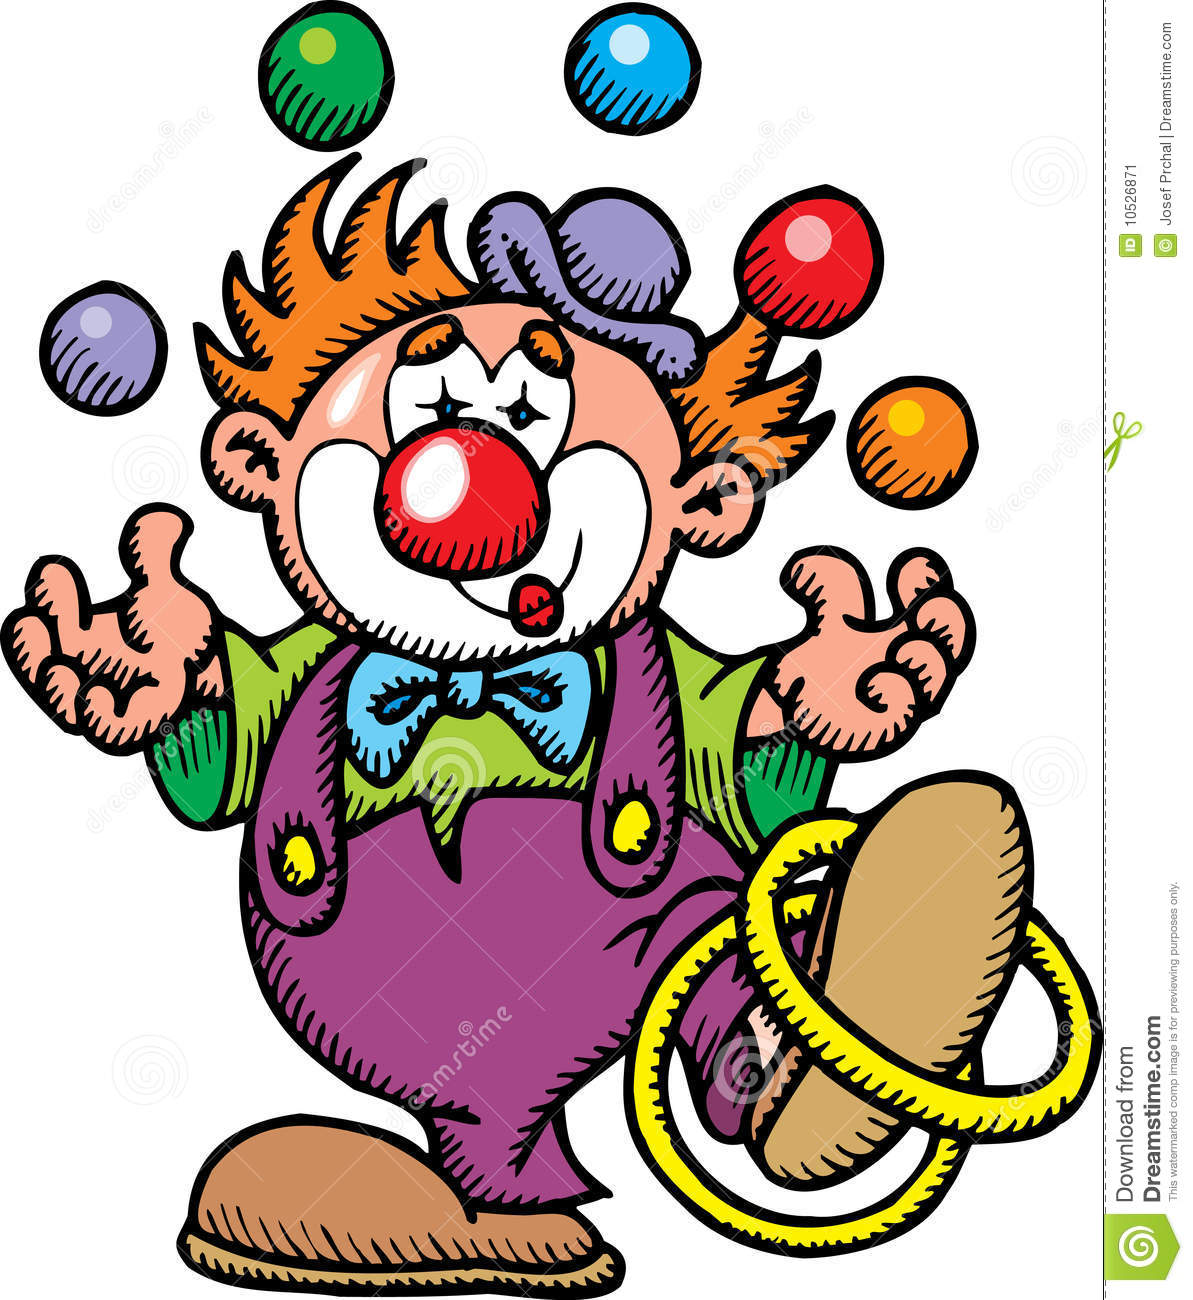 Clown de couleur illustration de vecteur illustration du farceur 10526871 - Comment dessiner un monstre qui fait peur ...